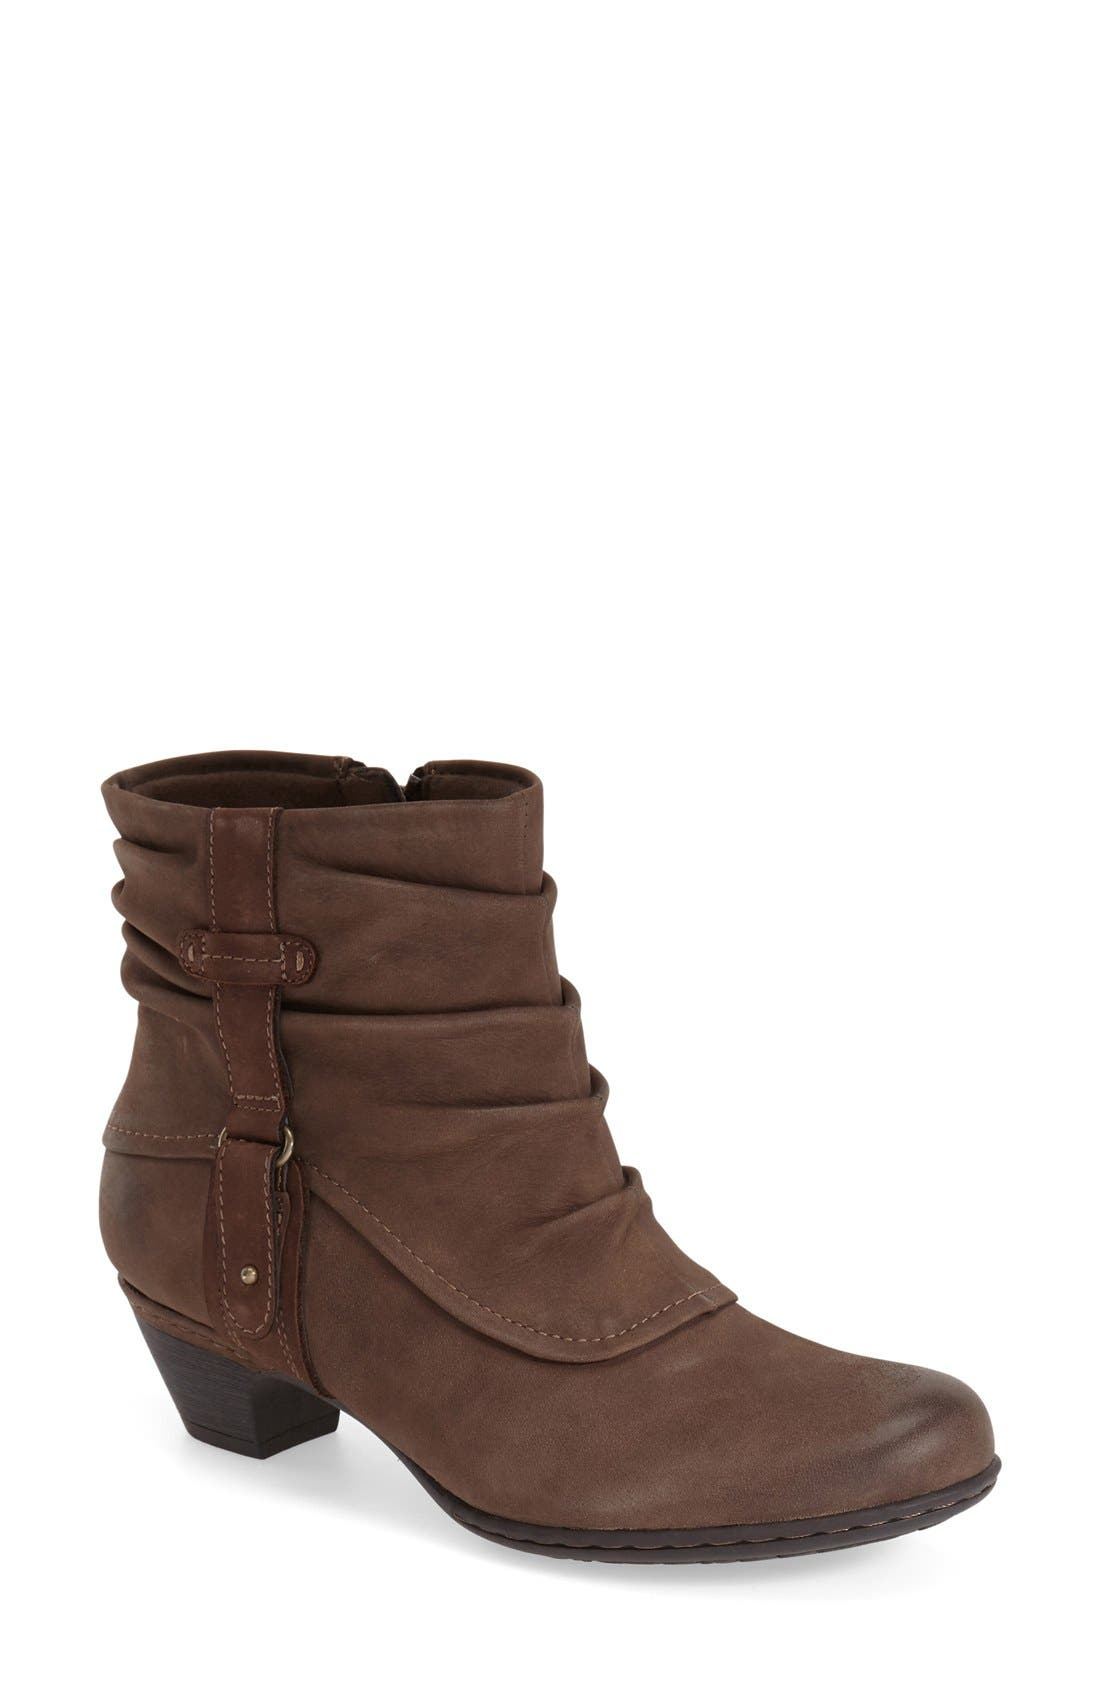 Alternate Image 1 Selected - Rockport Cobb Hill 'Alexandra' Boot